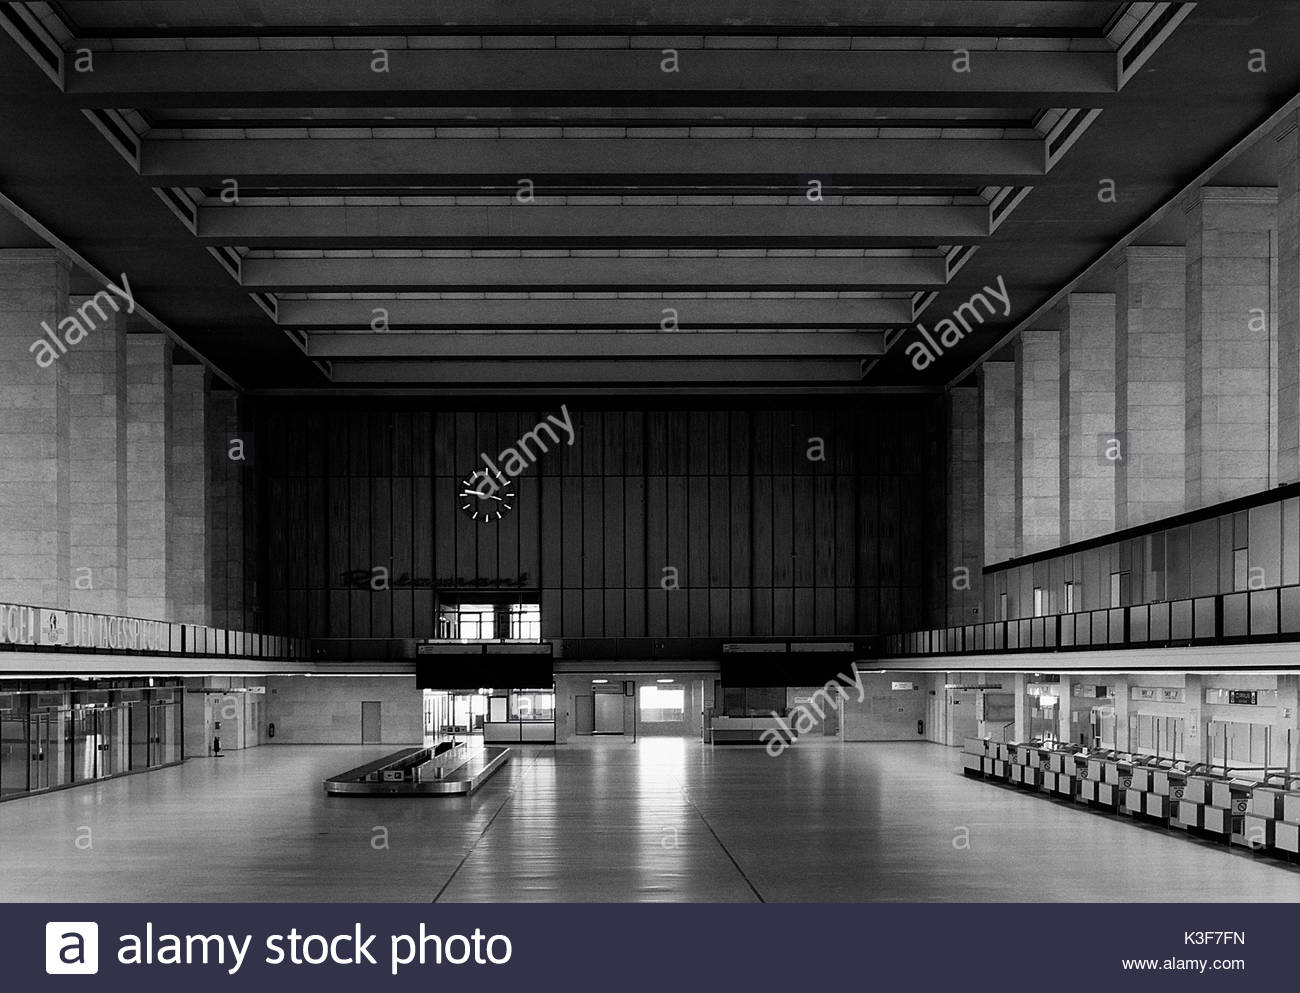 Lobby, Tempelhof Airport, Berlin, Germany - Stock Image